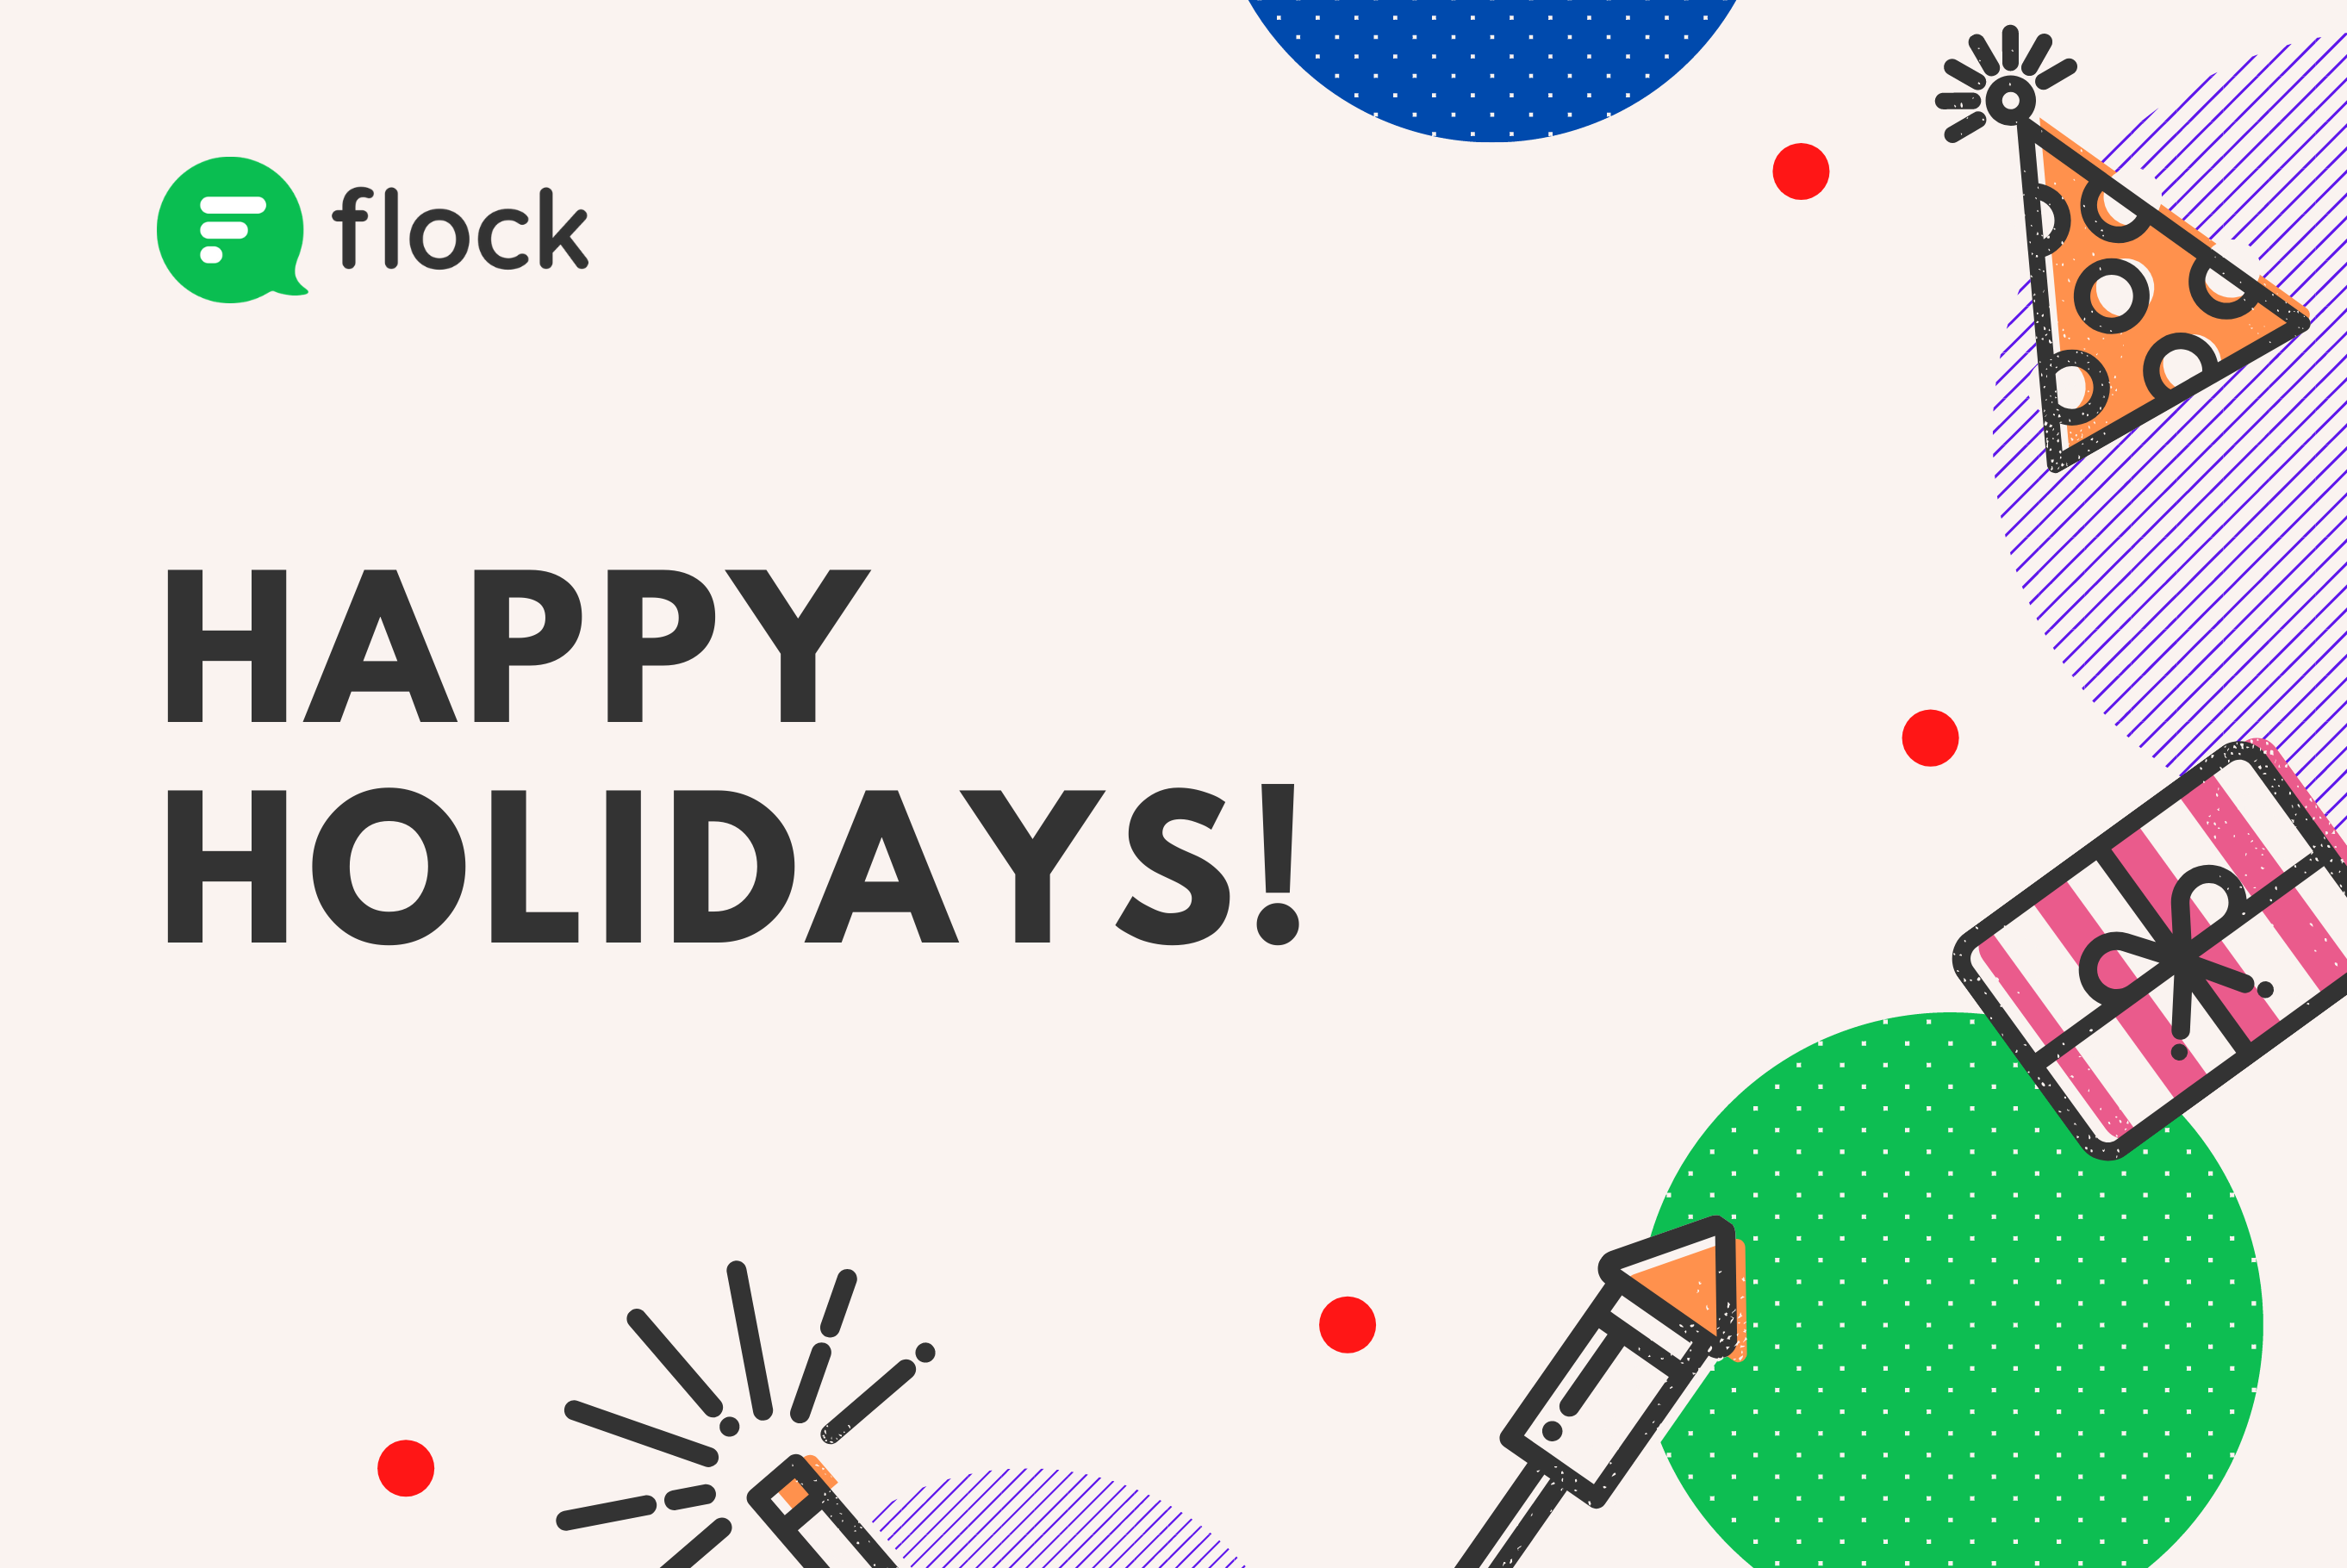 Happy holidays from Team Flock